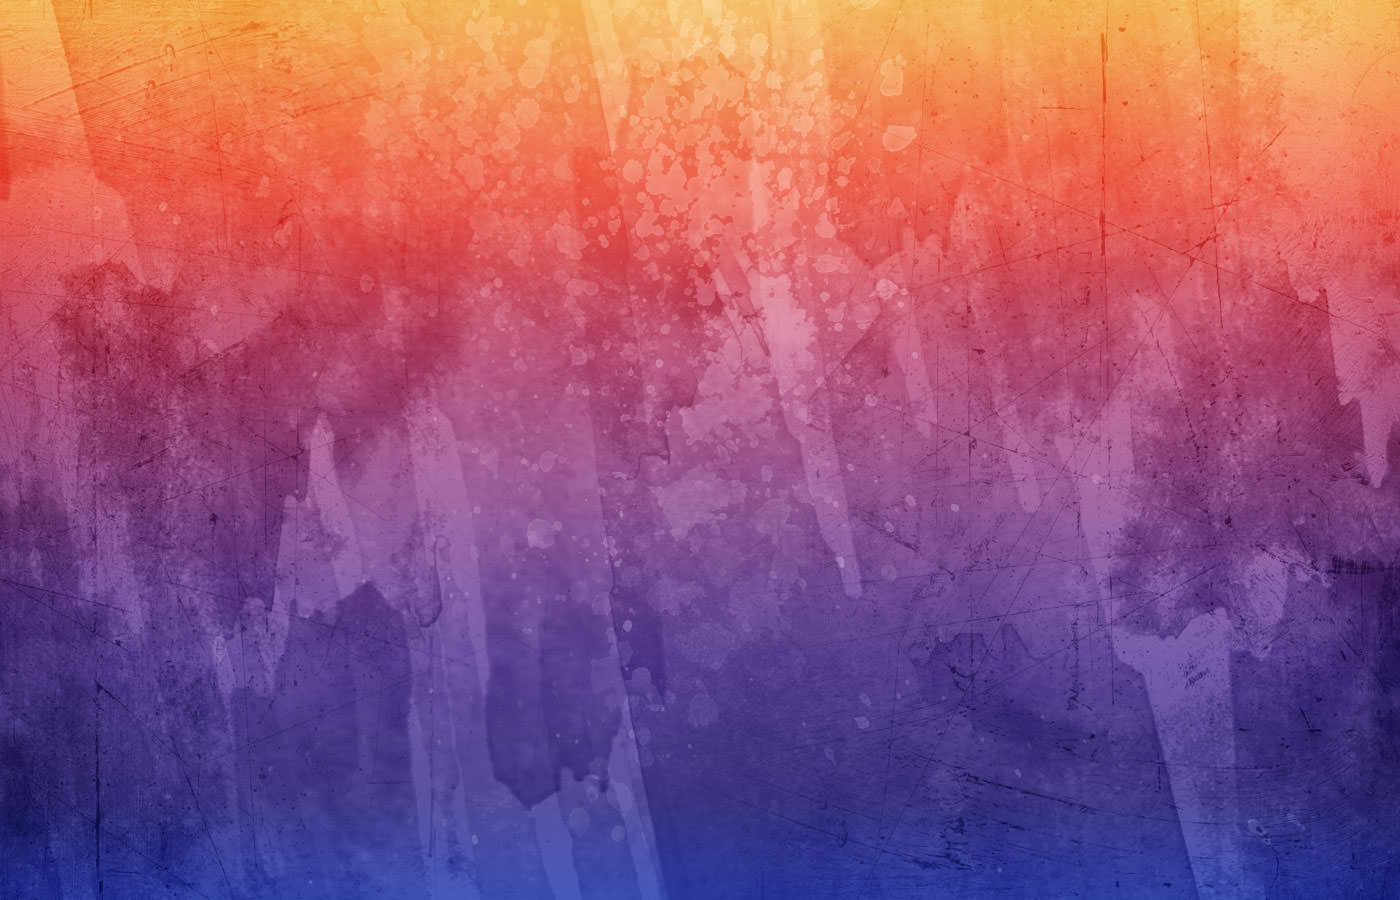 Colorful Grungy Watercolor Texture Backgrounds